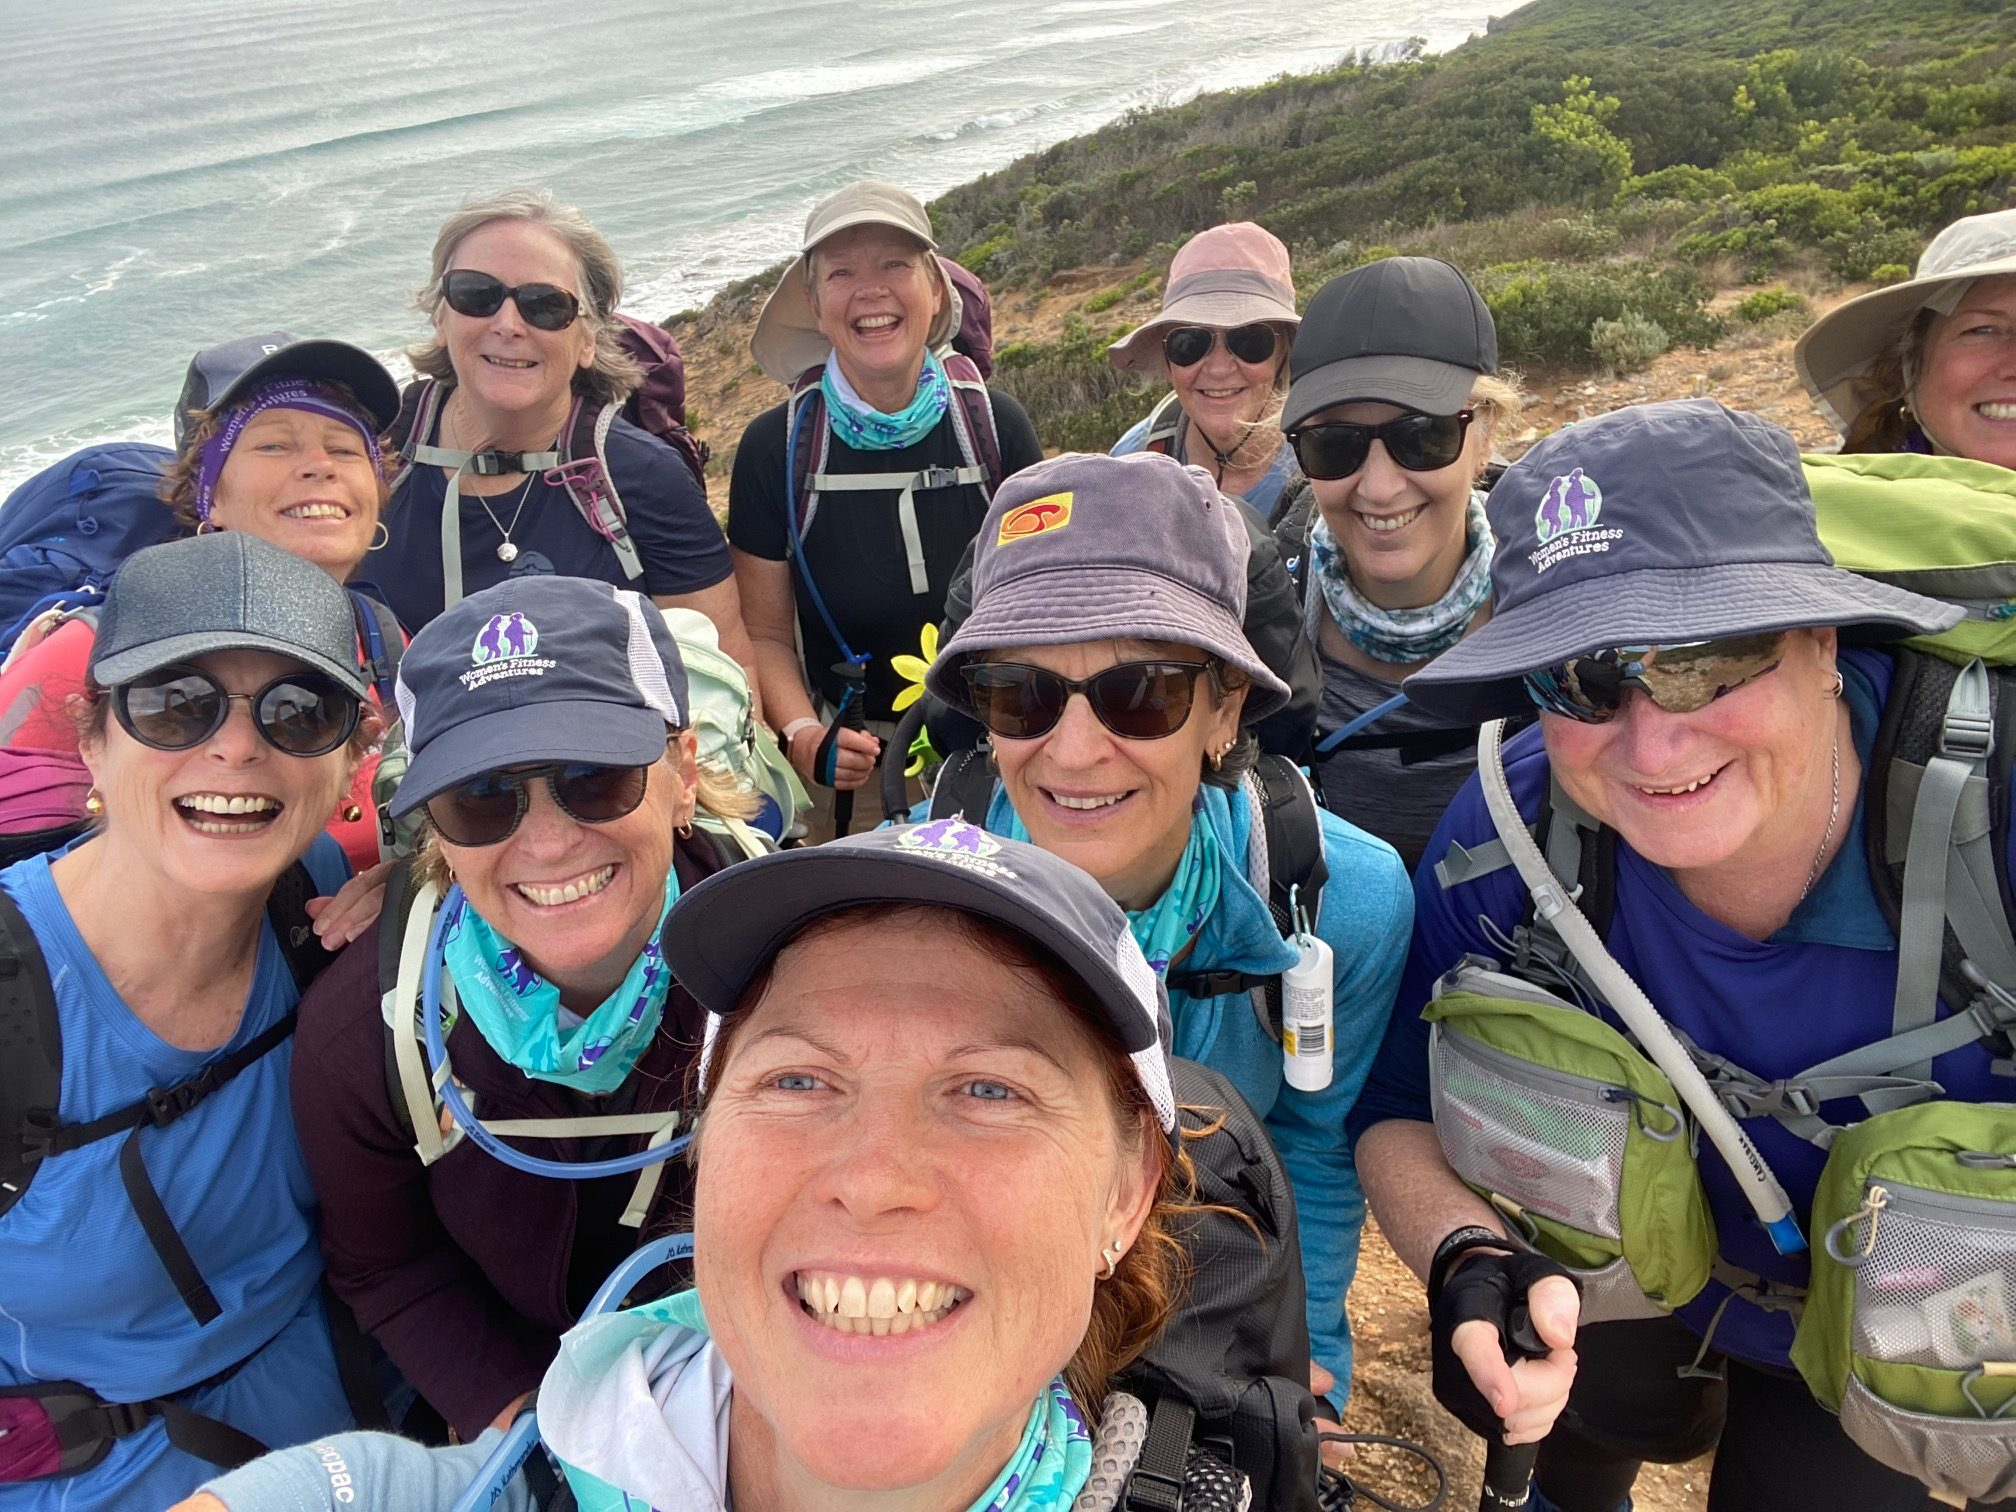 Create new friendships and priceless memories on our Great Ocean Road Hike